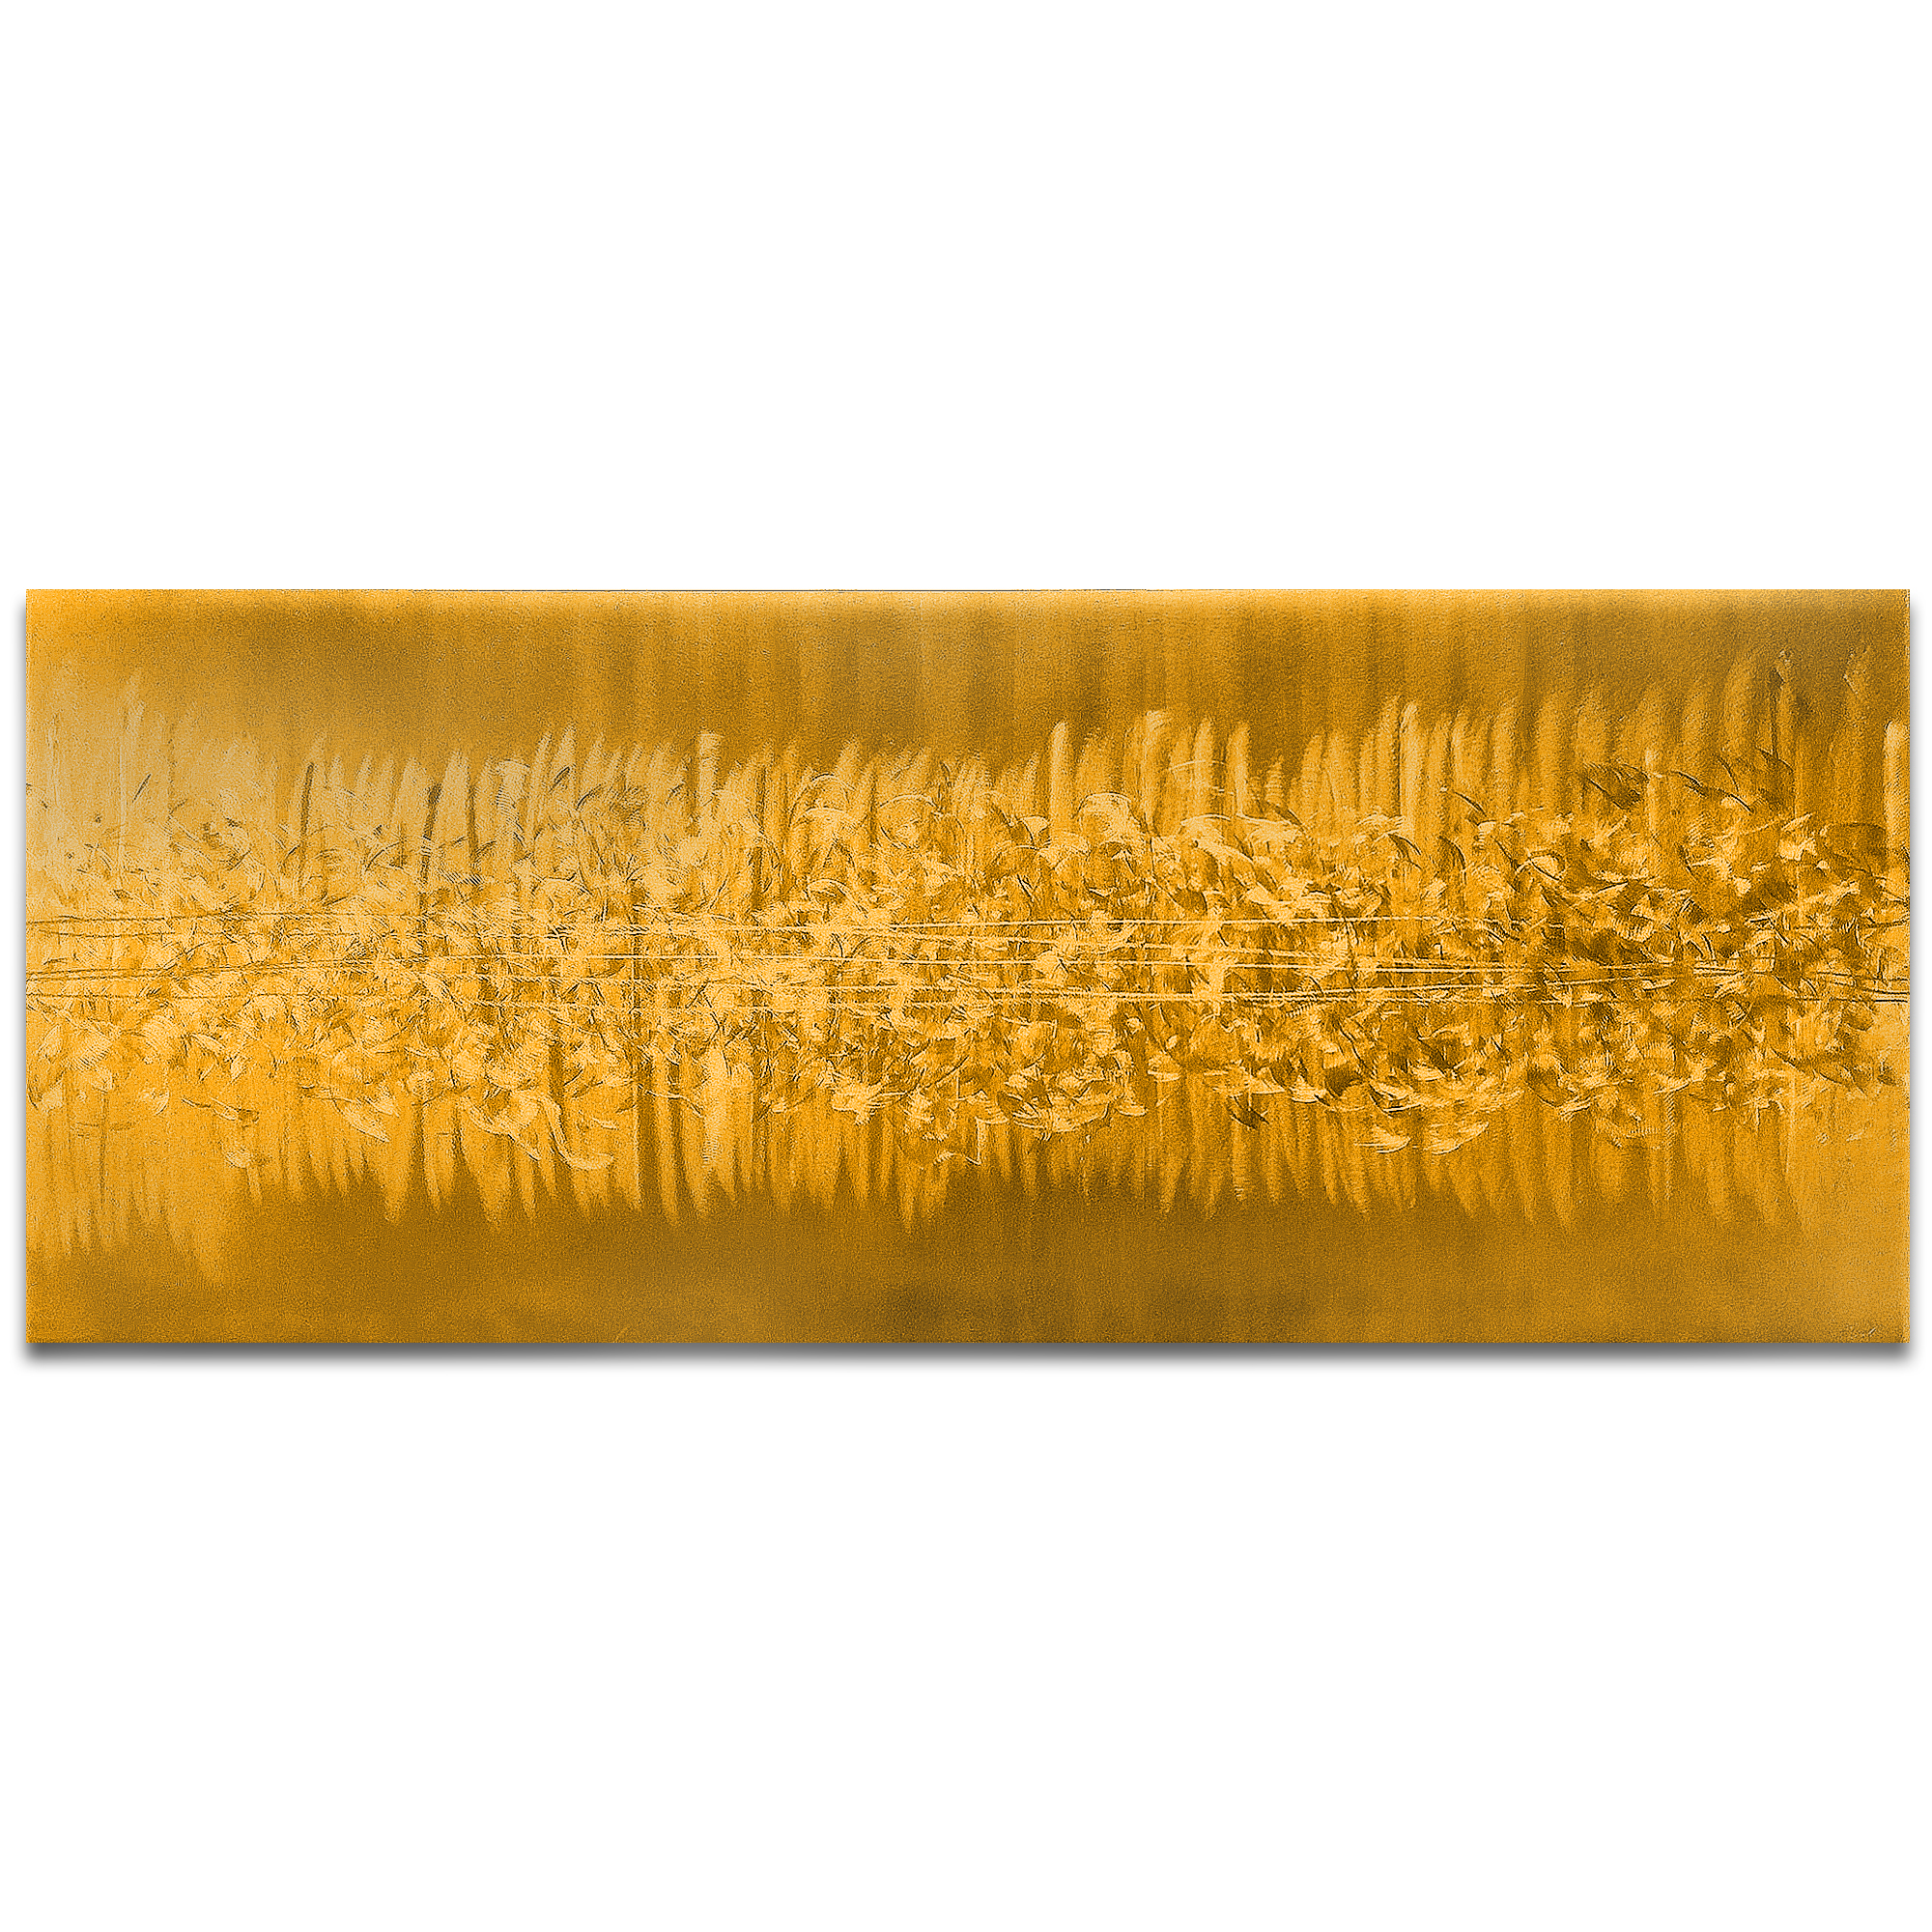 Helena Martin 'Static Gold' 60in x 24in Original Abstract Art on Ground and Painted Metal